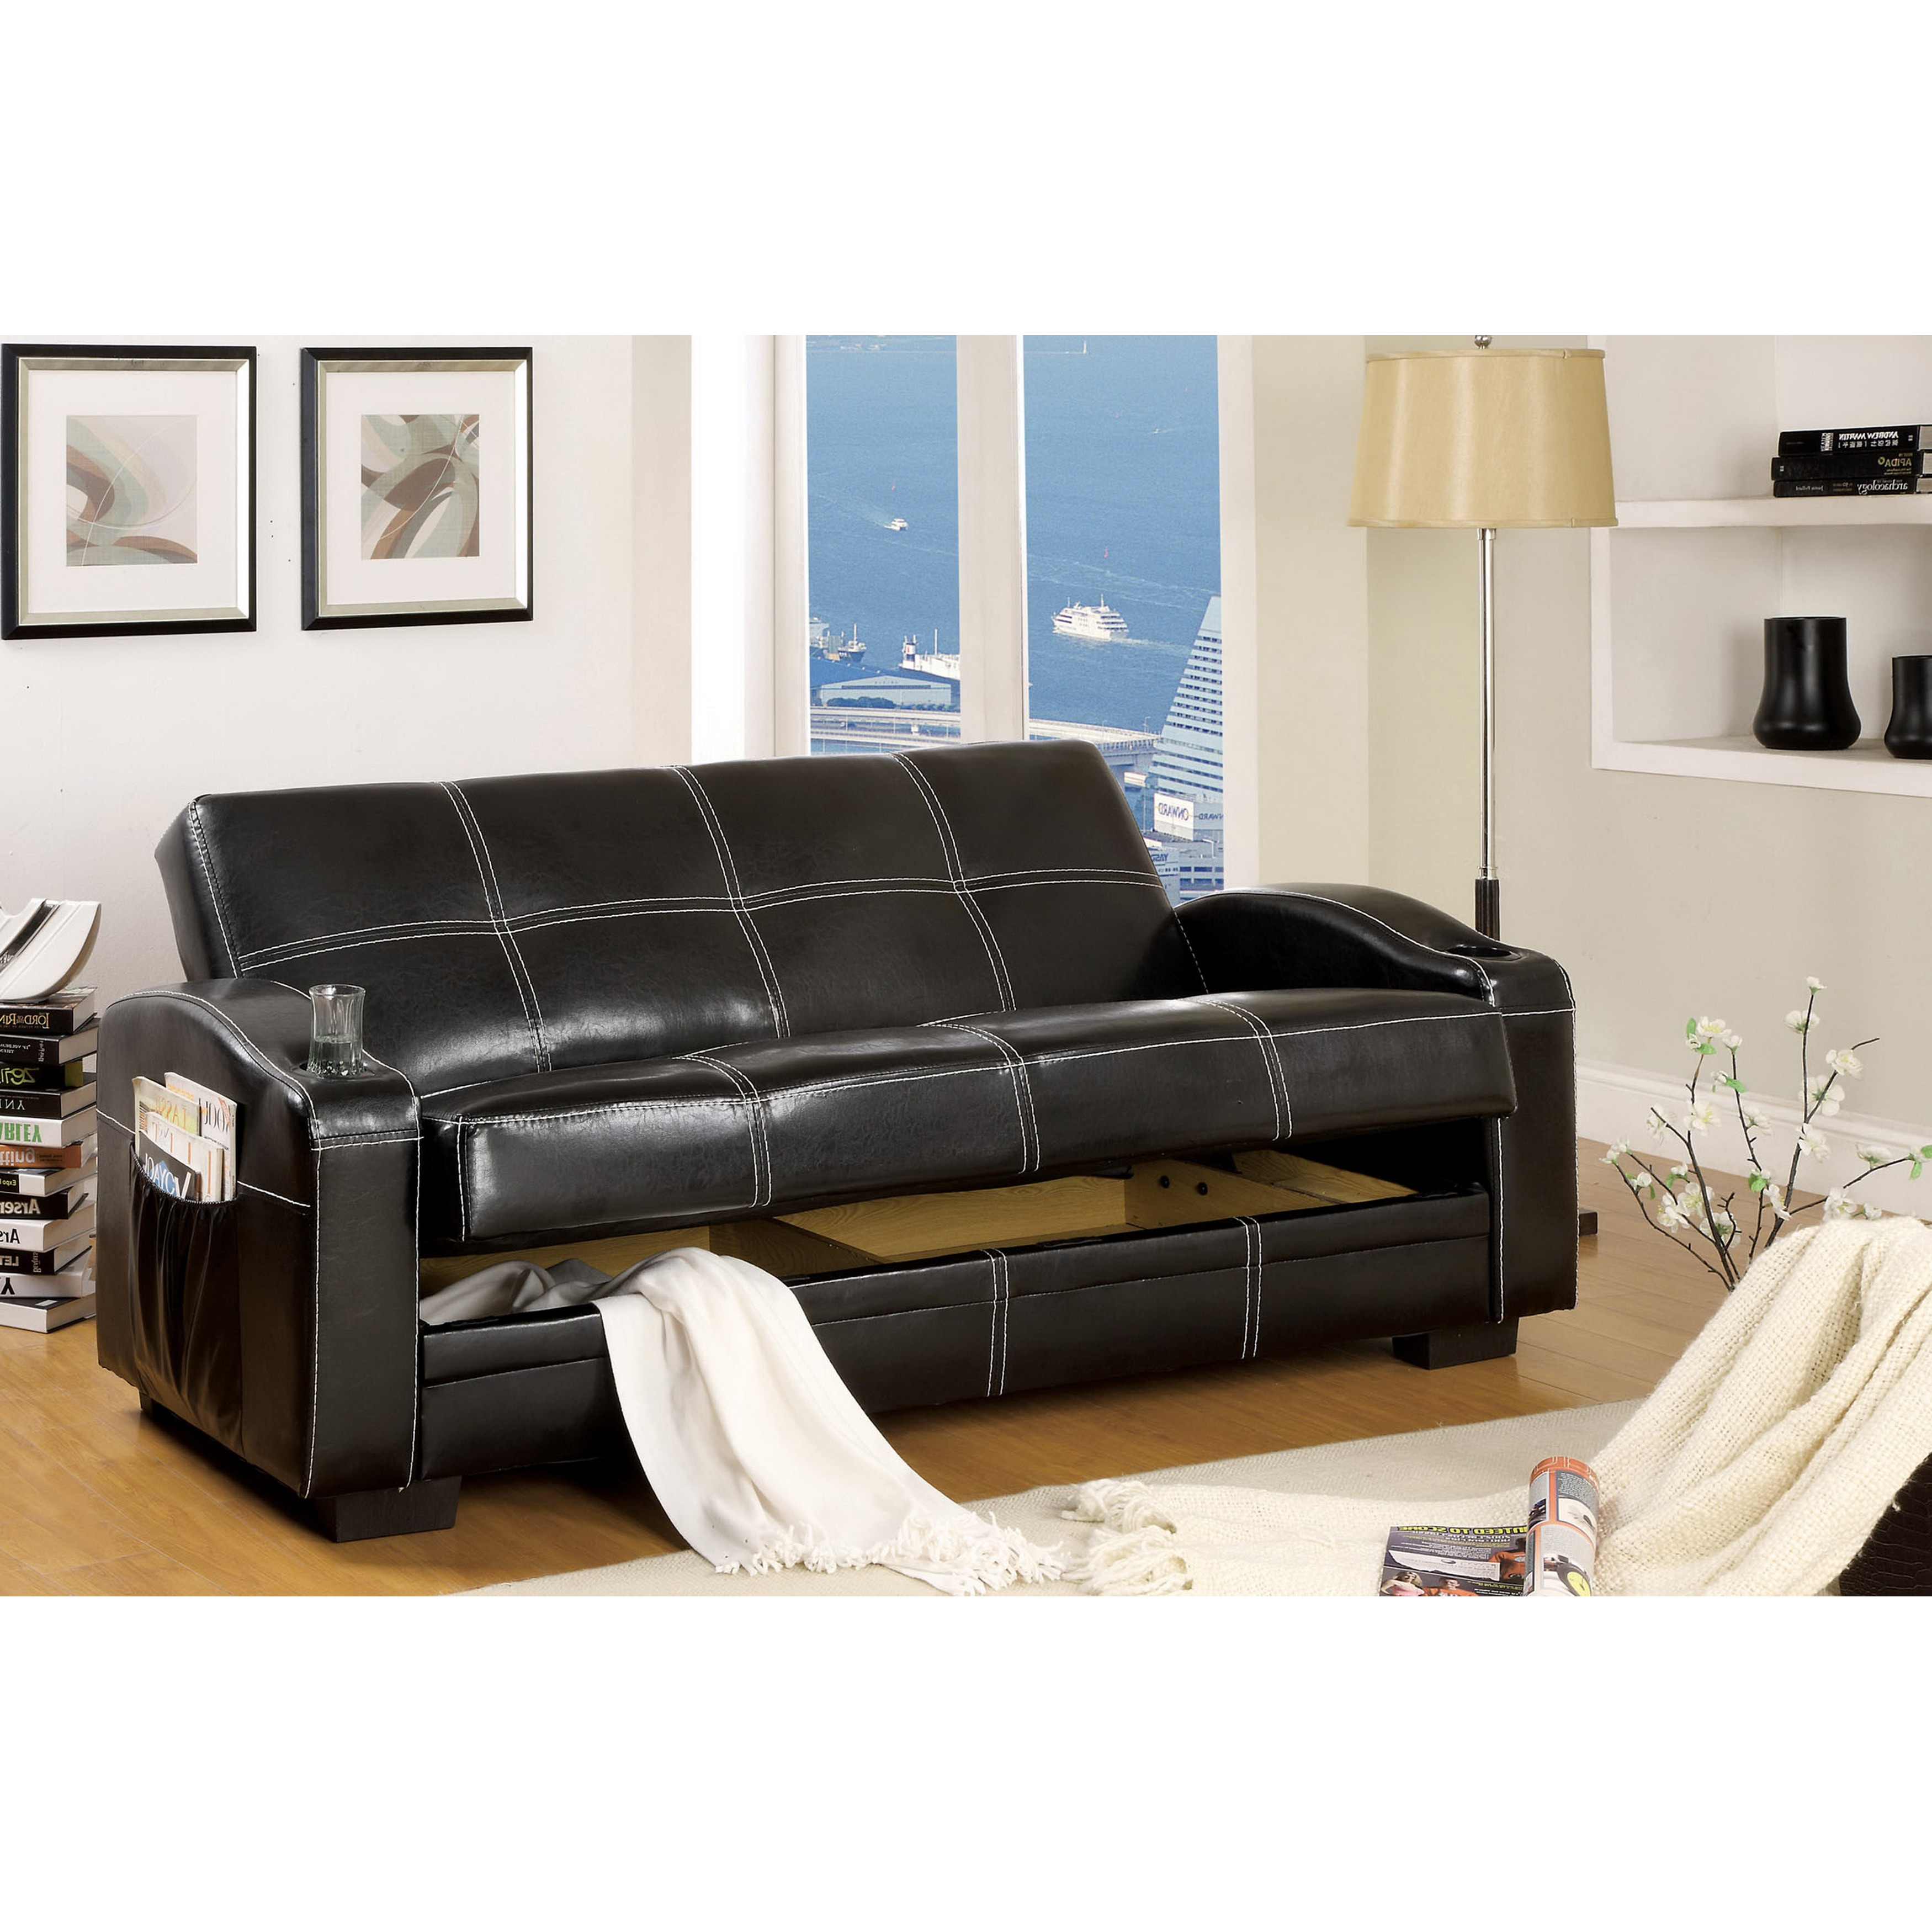 Furniture of America Max Multi functional Futon Sleeper Sofa with